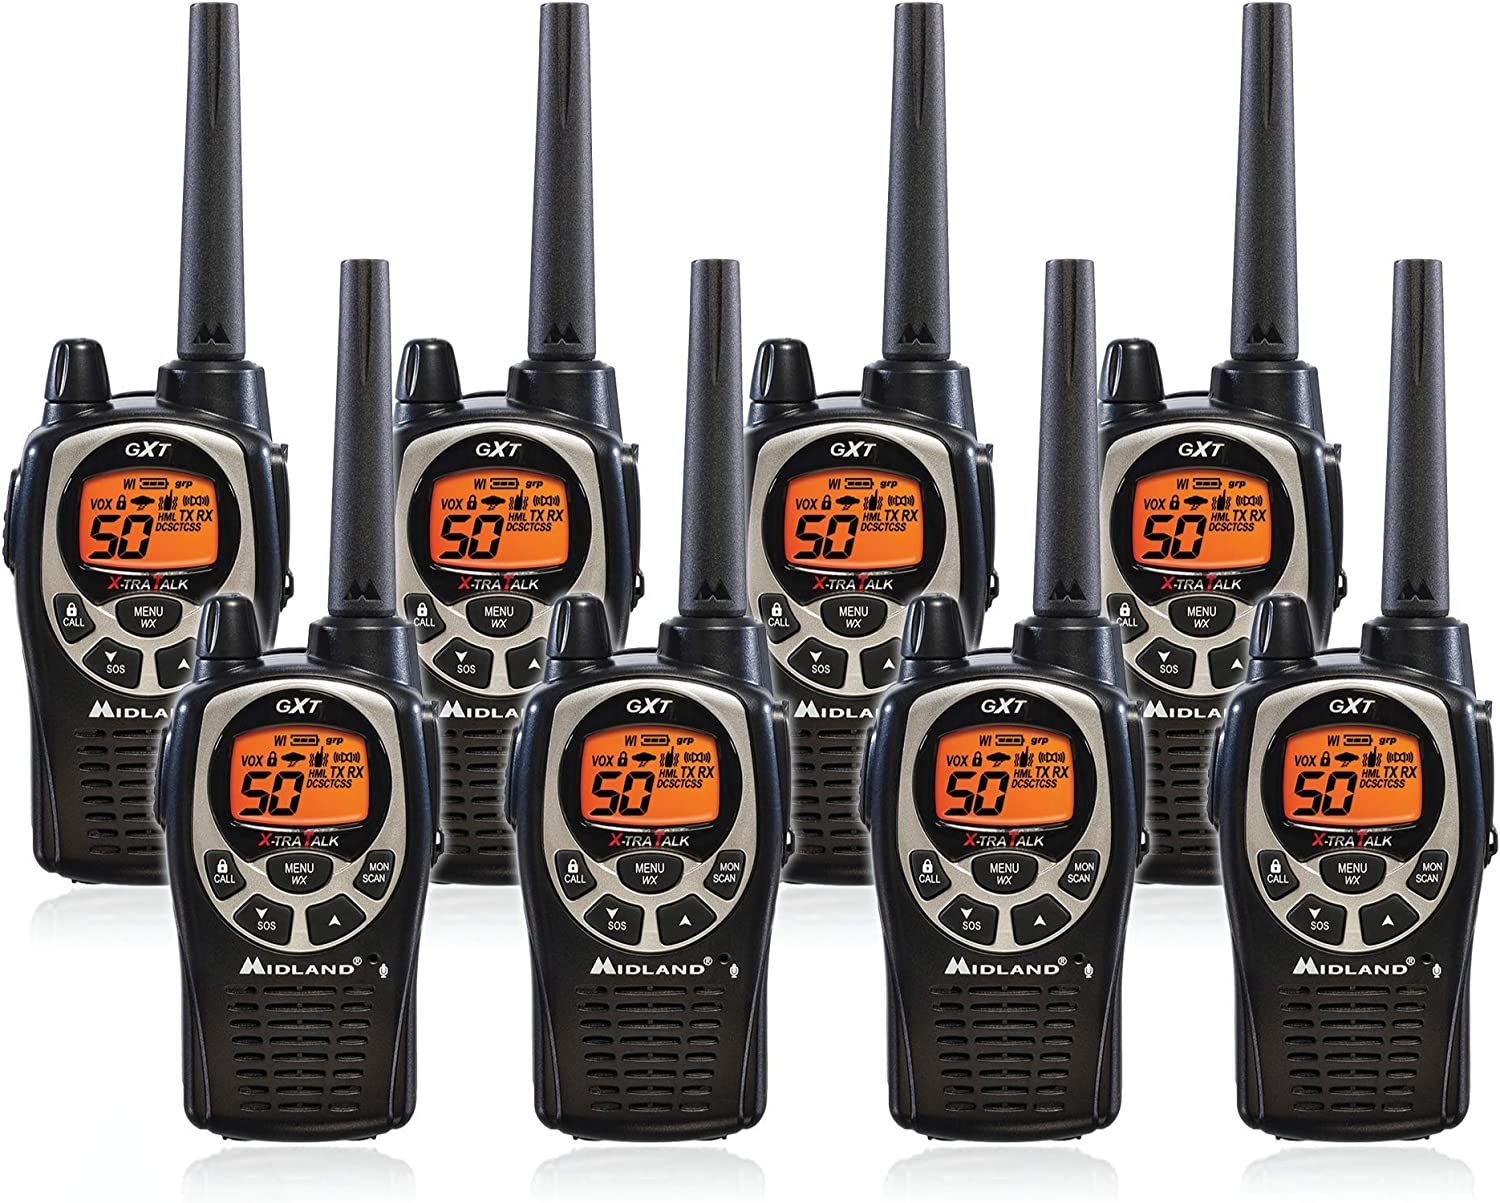 Midland GXT1000VP4 50 Channel GMRS Two-Way Radio - Up to 36 Mile Range Walkie Talkie - Black/Silver (Pack of 8)